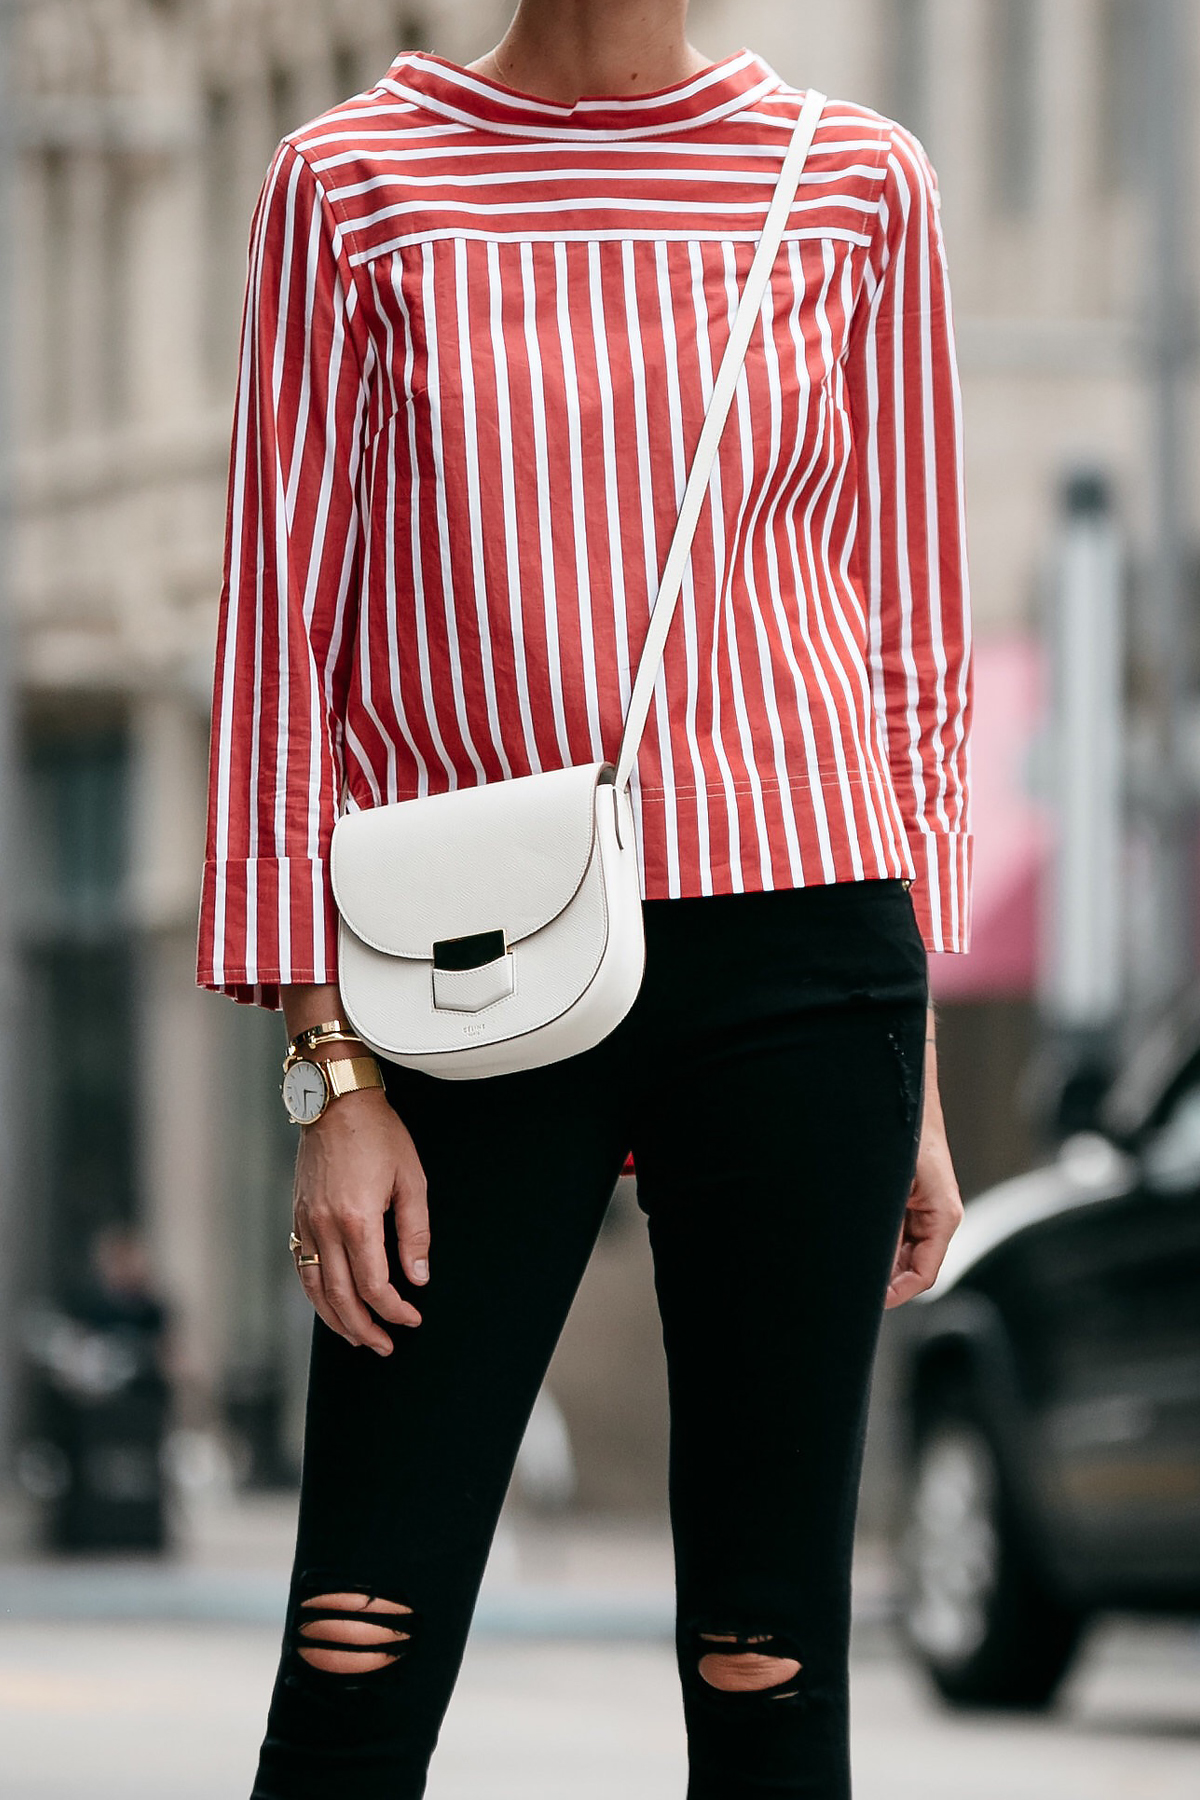 Jcrew Red White Striped Shirt Celine White Trotteur Handbag Black Ripped Skinny Jeans Fashion Jackson Dallas Blogger Fashion Blogger Street Style